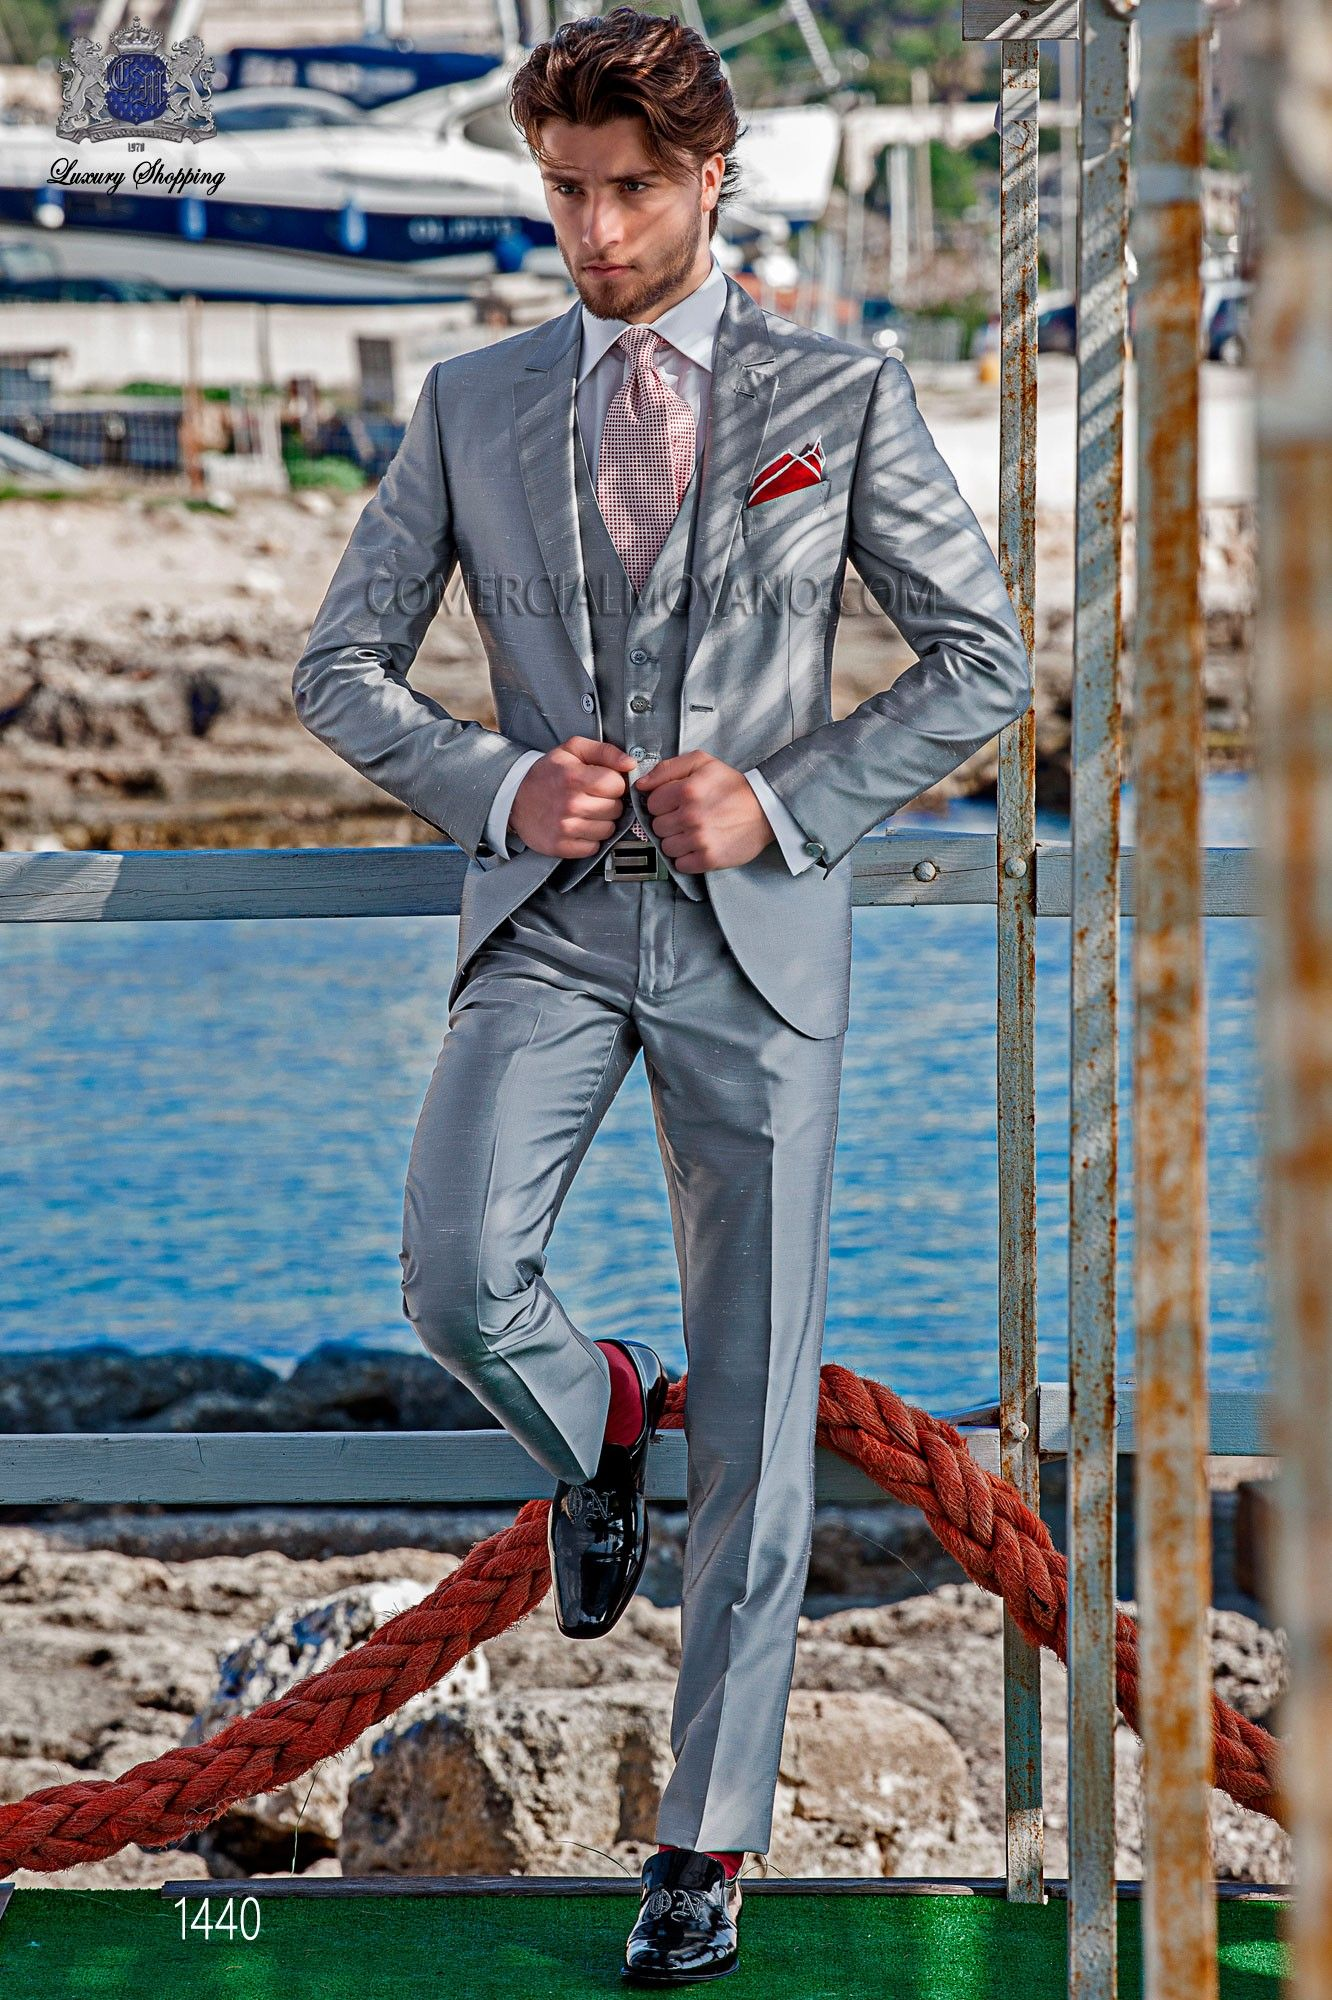 Pin by Alejandro Hidalgo on Moda | Pinterest | Sharp dressed man and ...